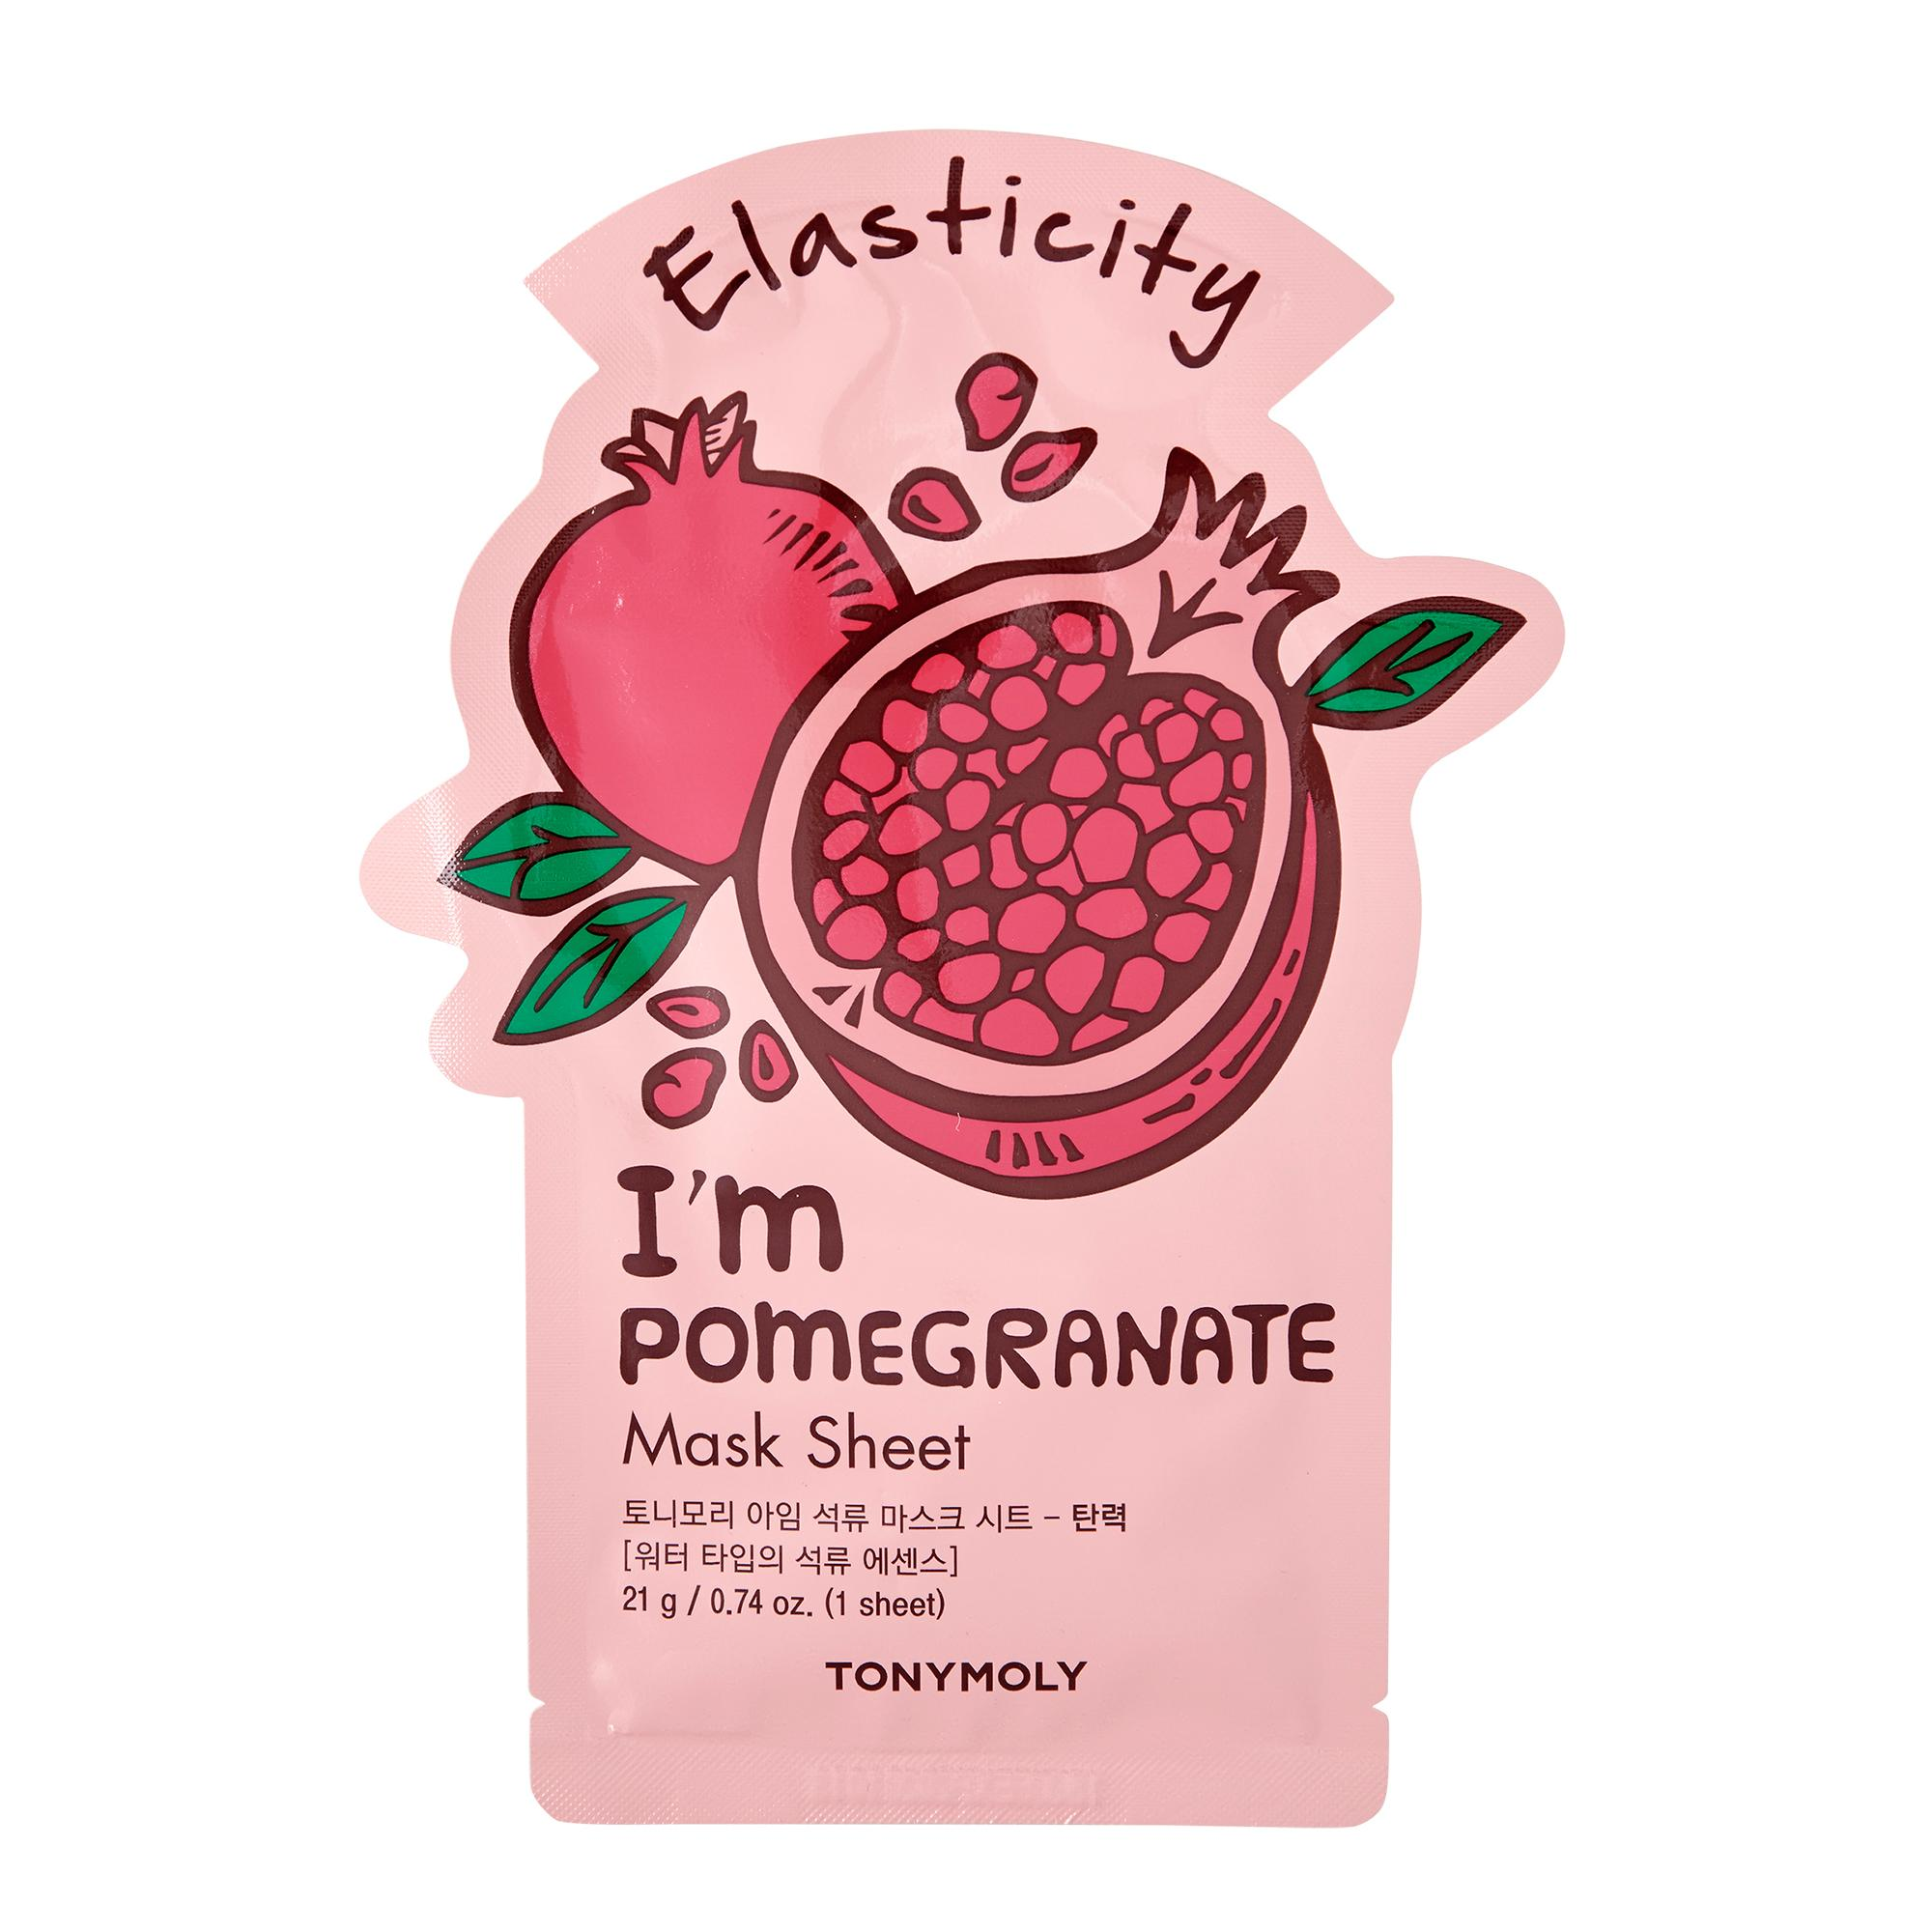 I'm Pomegranate Mask Sheet